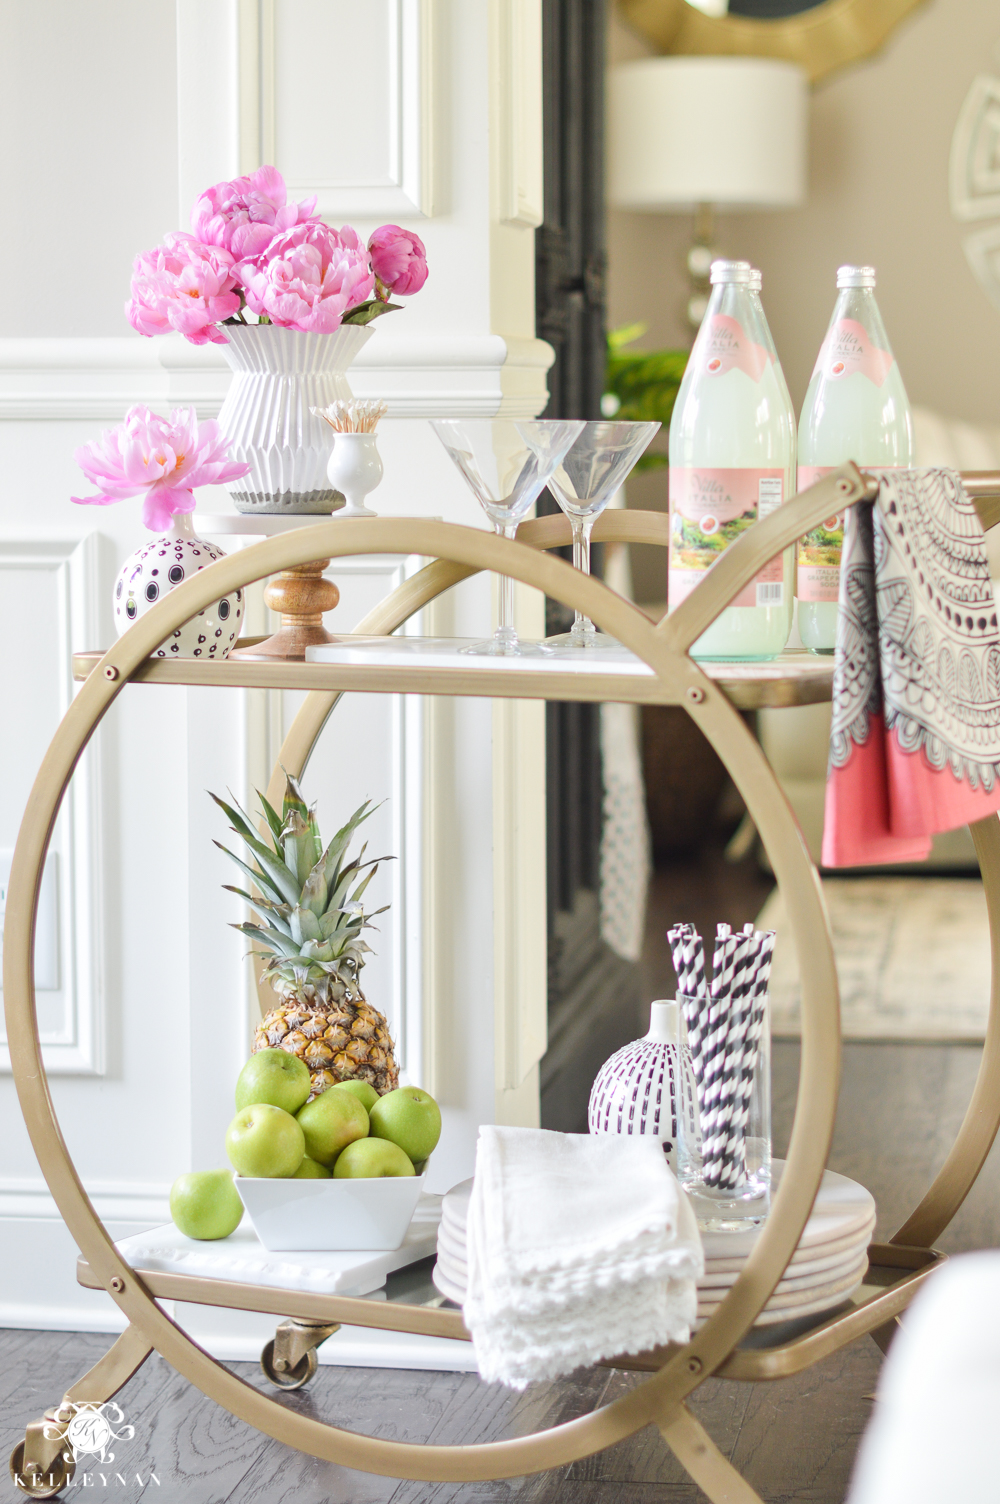 Easy Tropical Bar Cart with Peonies and Pineapple- bar cart accessories